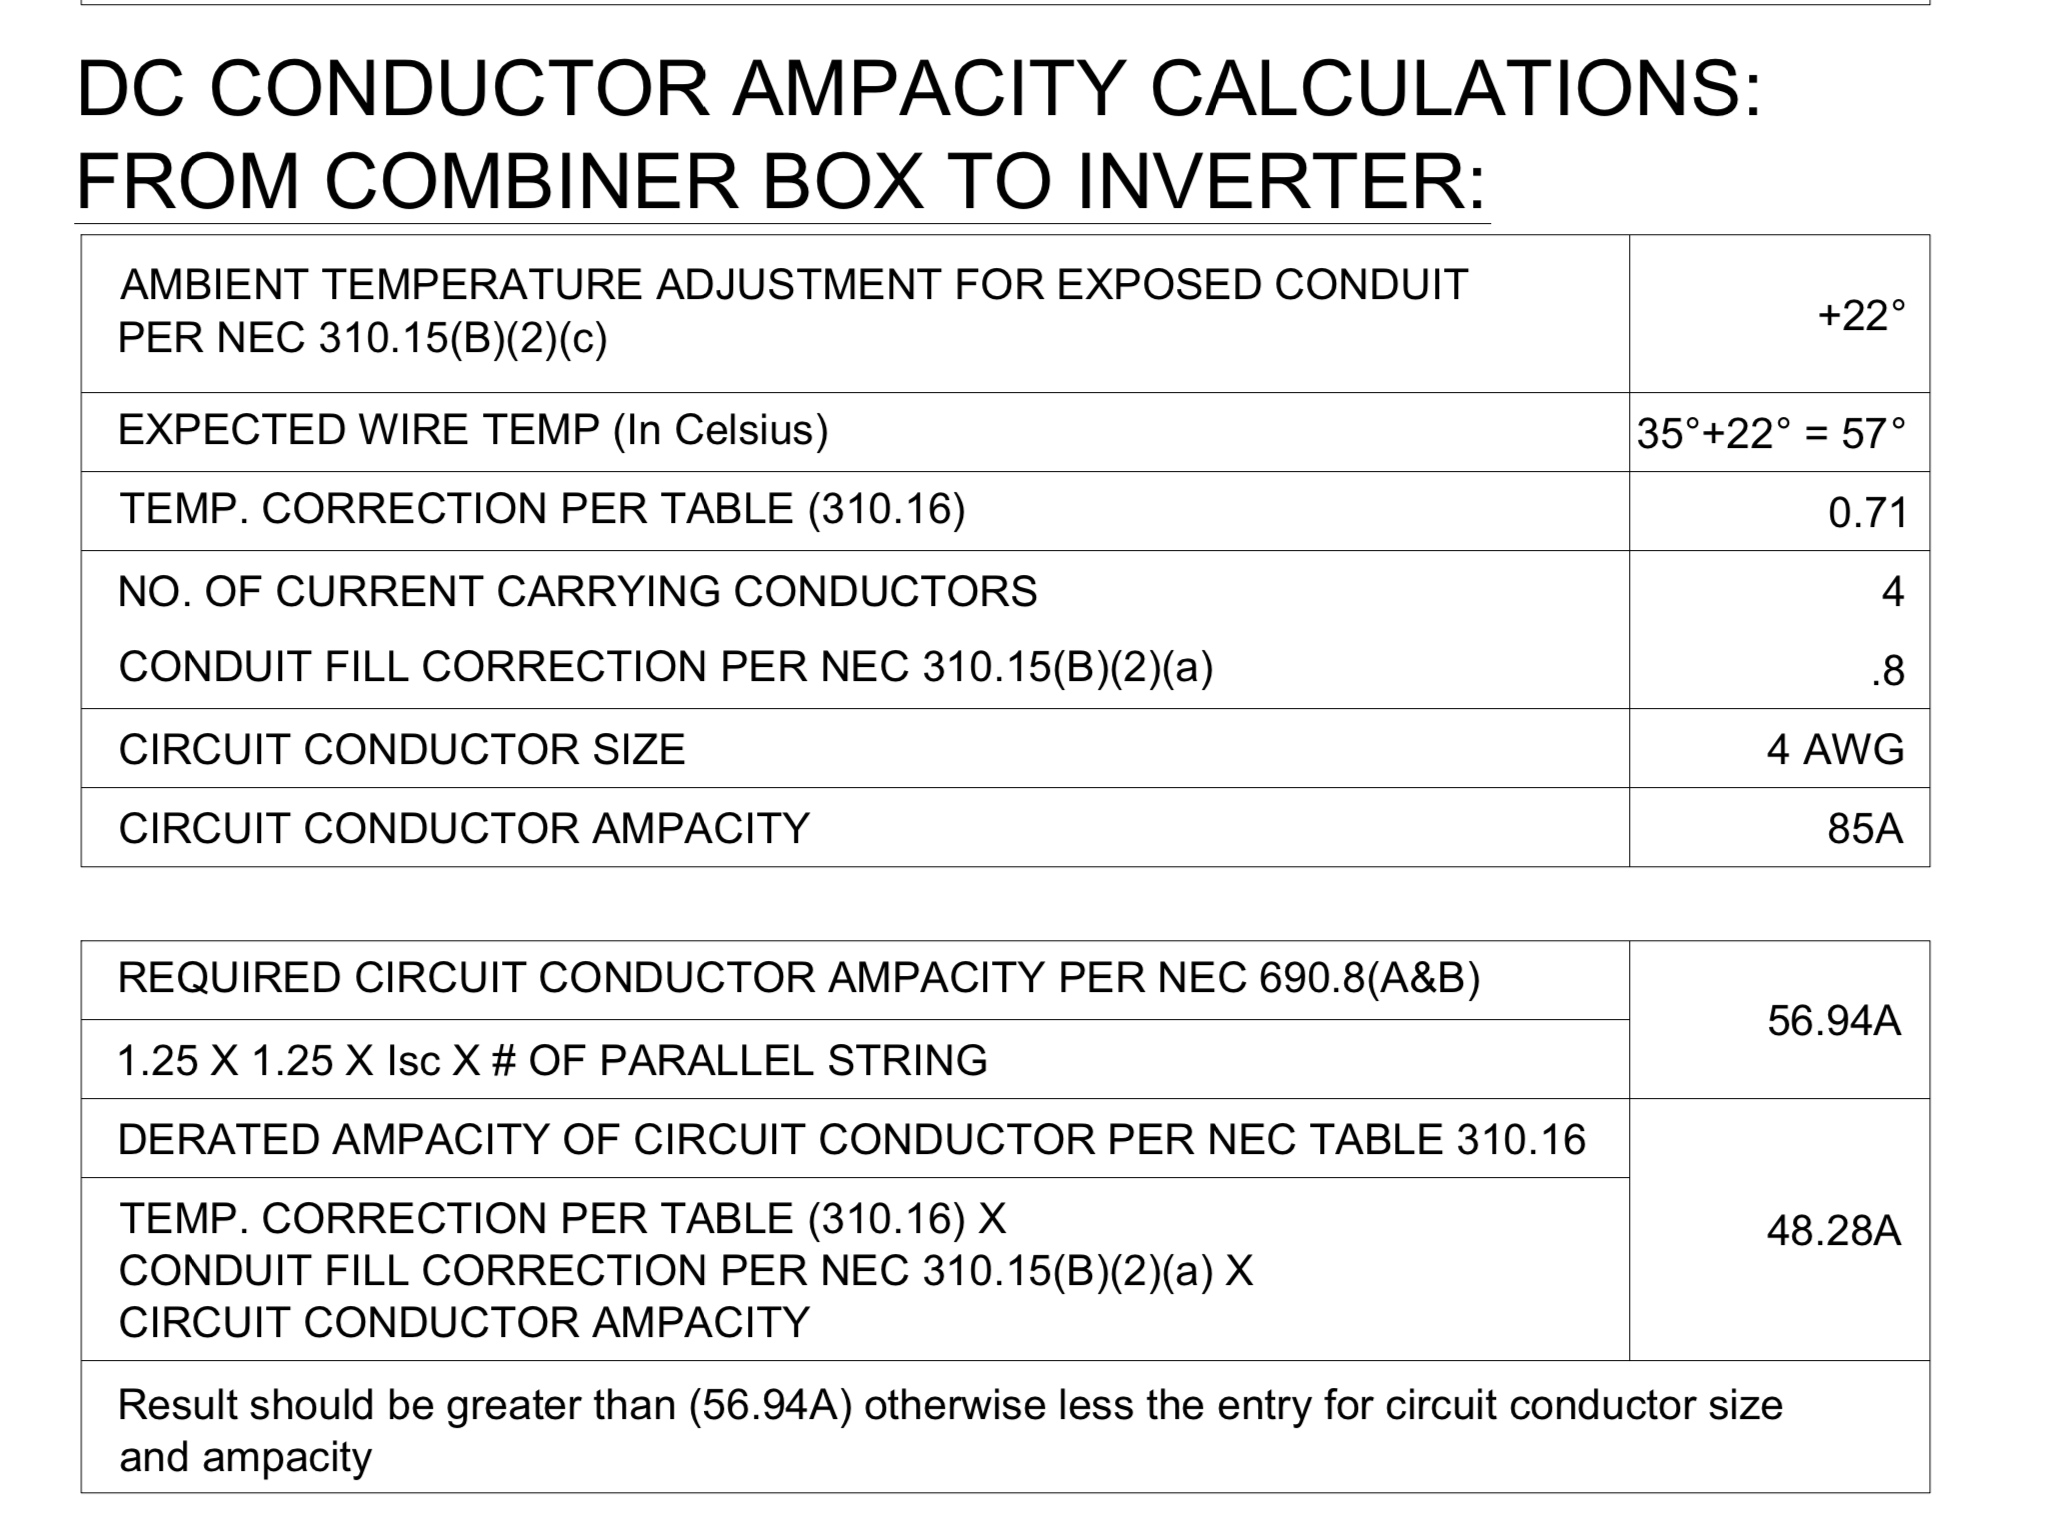 Nec ampacity table 310 16 restaurant interior design drawing dc conductor ampacity calculations help northernarizona windandsun rh forum solar electric com nec 310 15 16 chart wire ampacity table greentooth